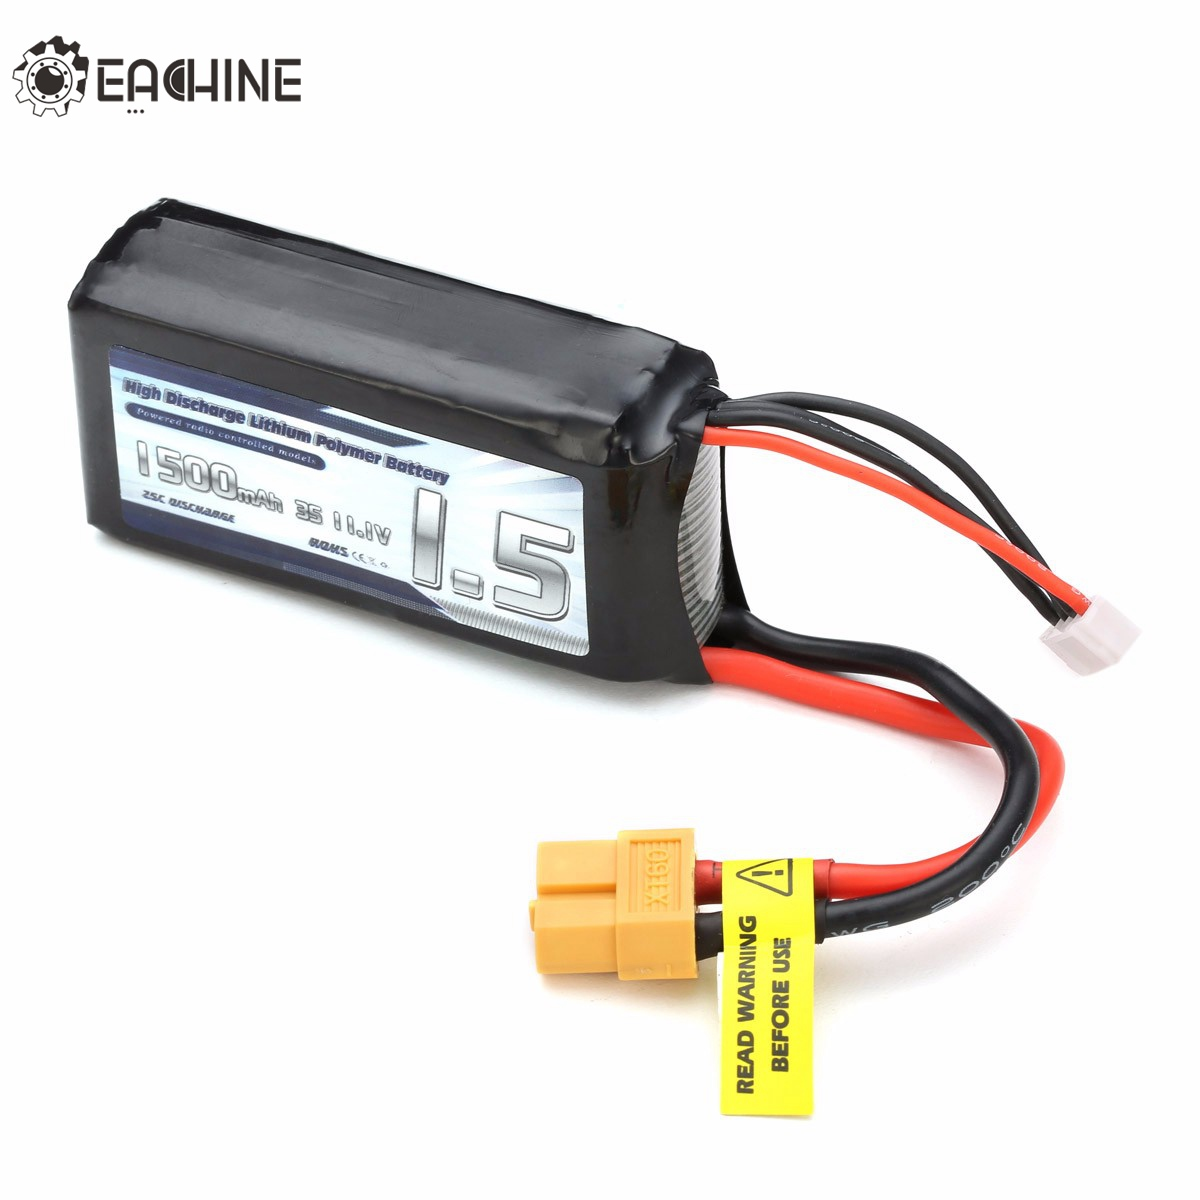 Eachine Wizard X220 Racer 250 Drone Spare Part 1500mAh 3S 11.1V XT60 Plug Lipo Battery For RC Racing FPV Quadcopter Accessories high quality realacc orange85 fpv racer spare part 3s 11 1v 450mah lipo battery for rc model